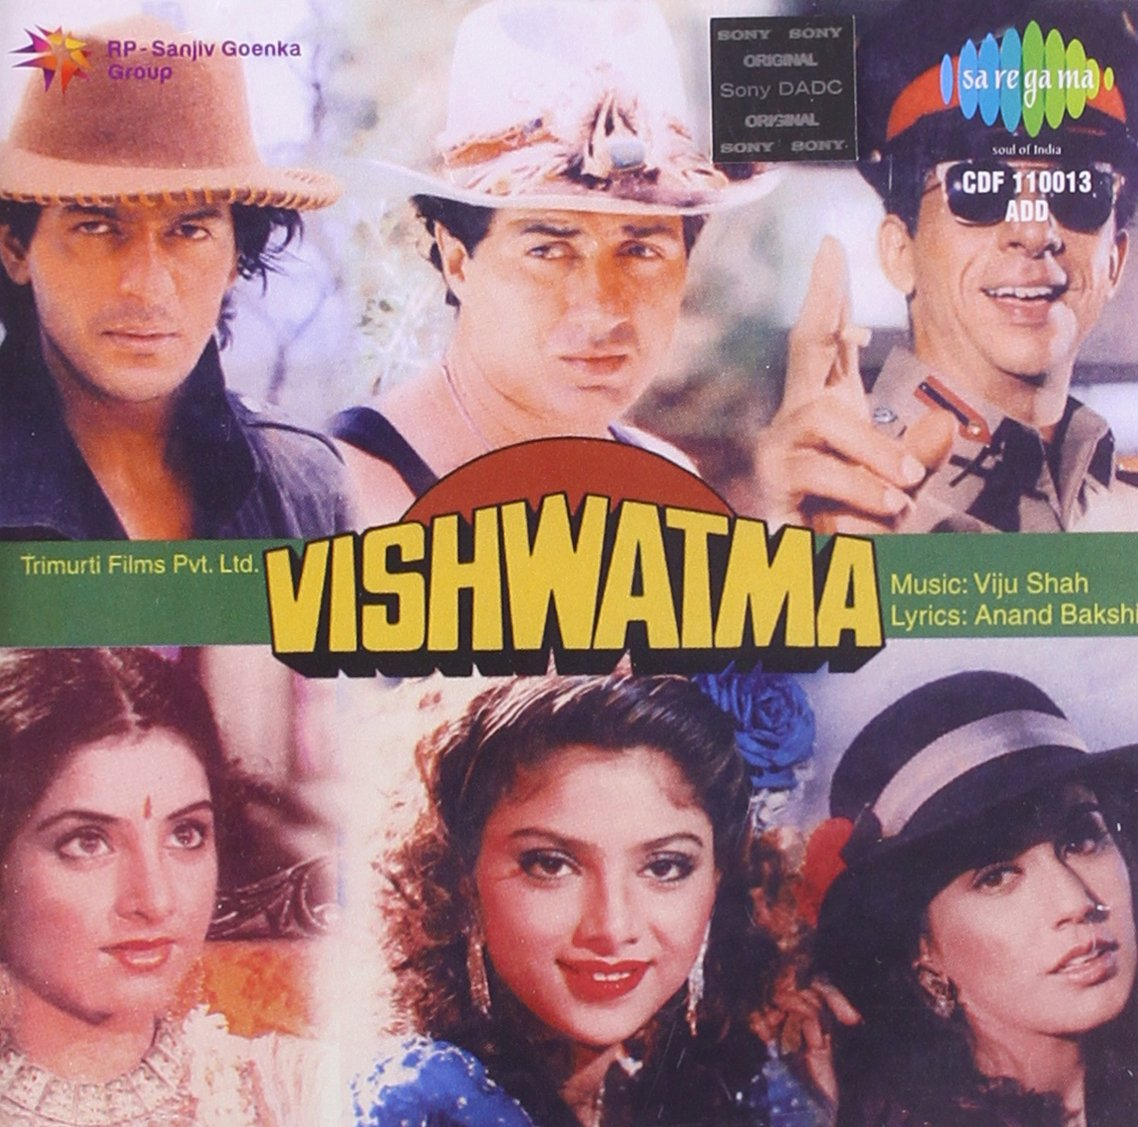 Vishwatma (1992) MP3 Songs Download | DOWNLOADMING